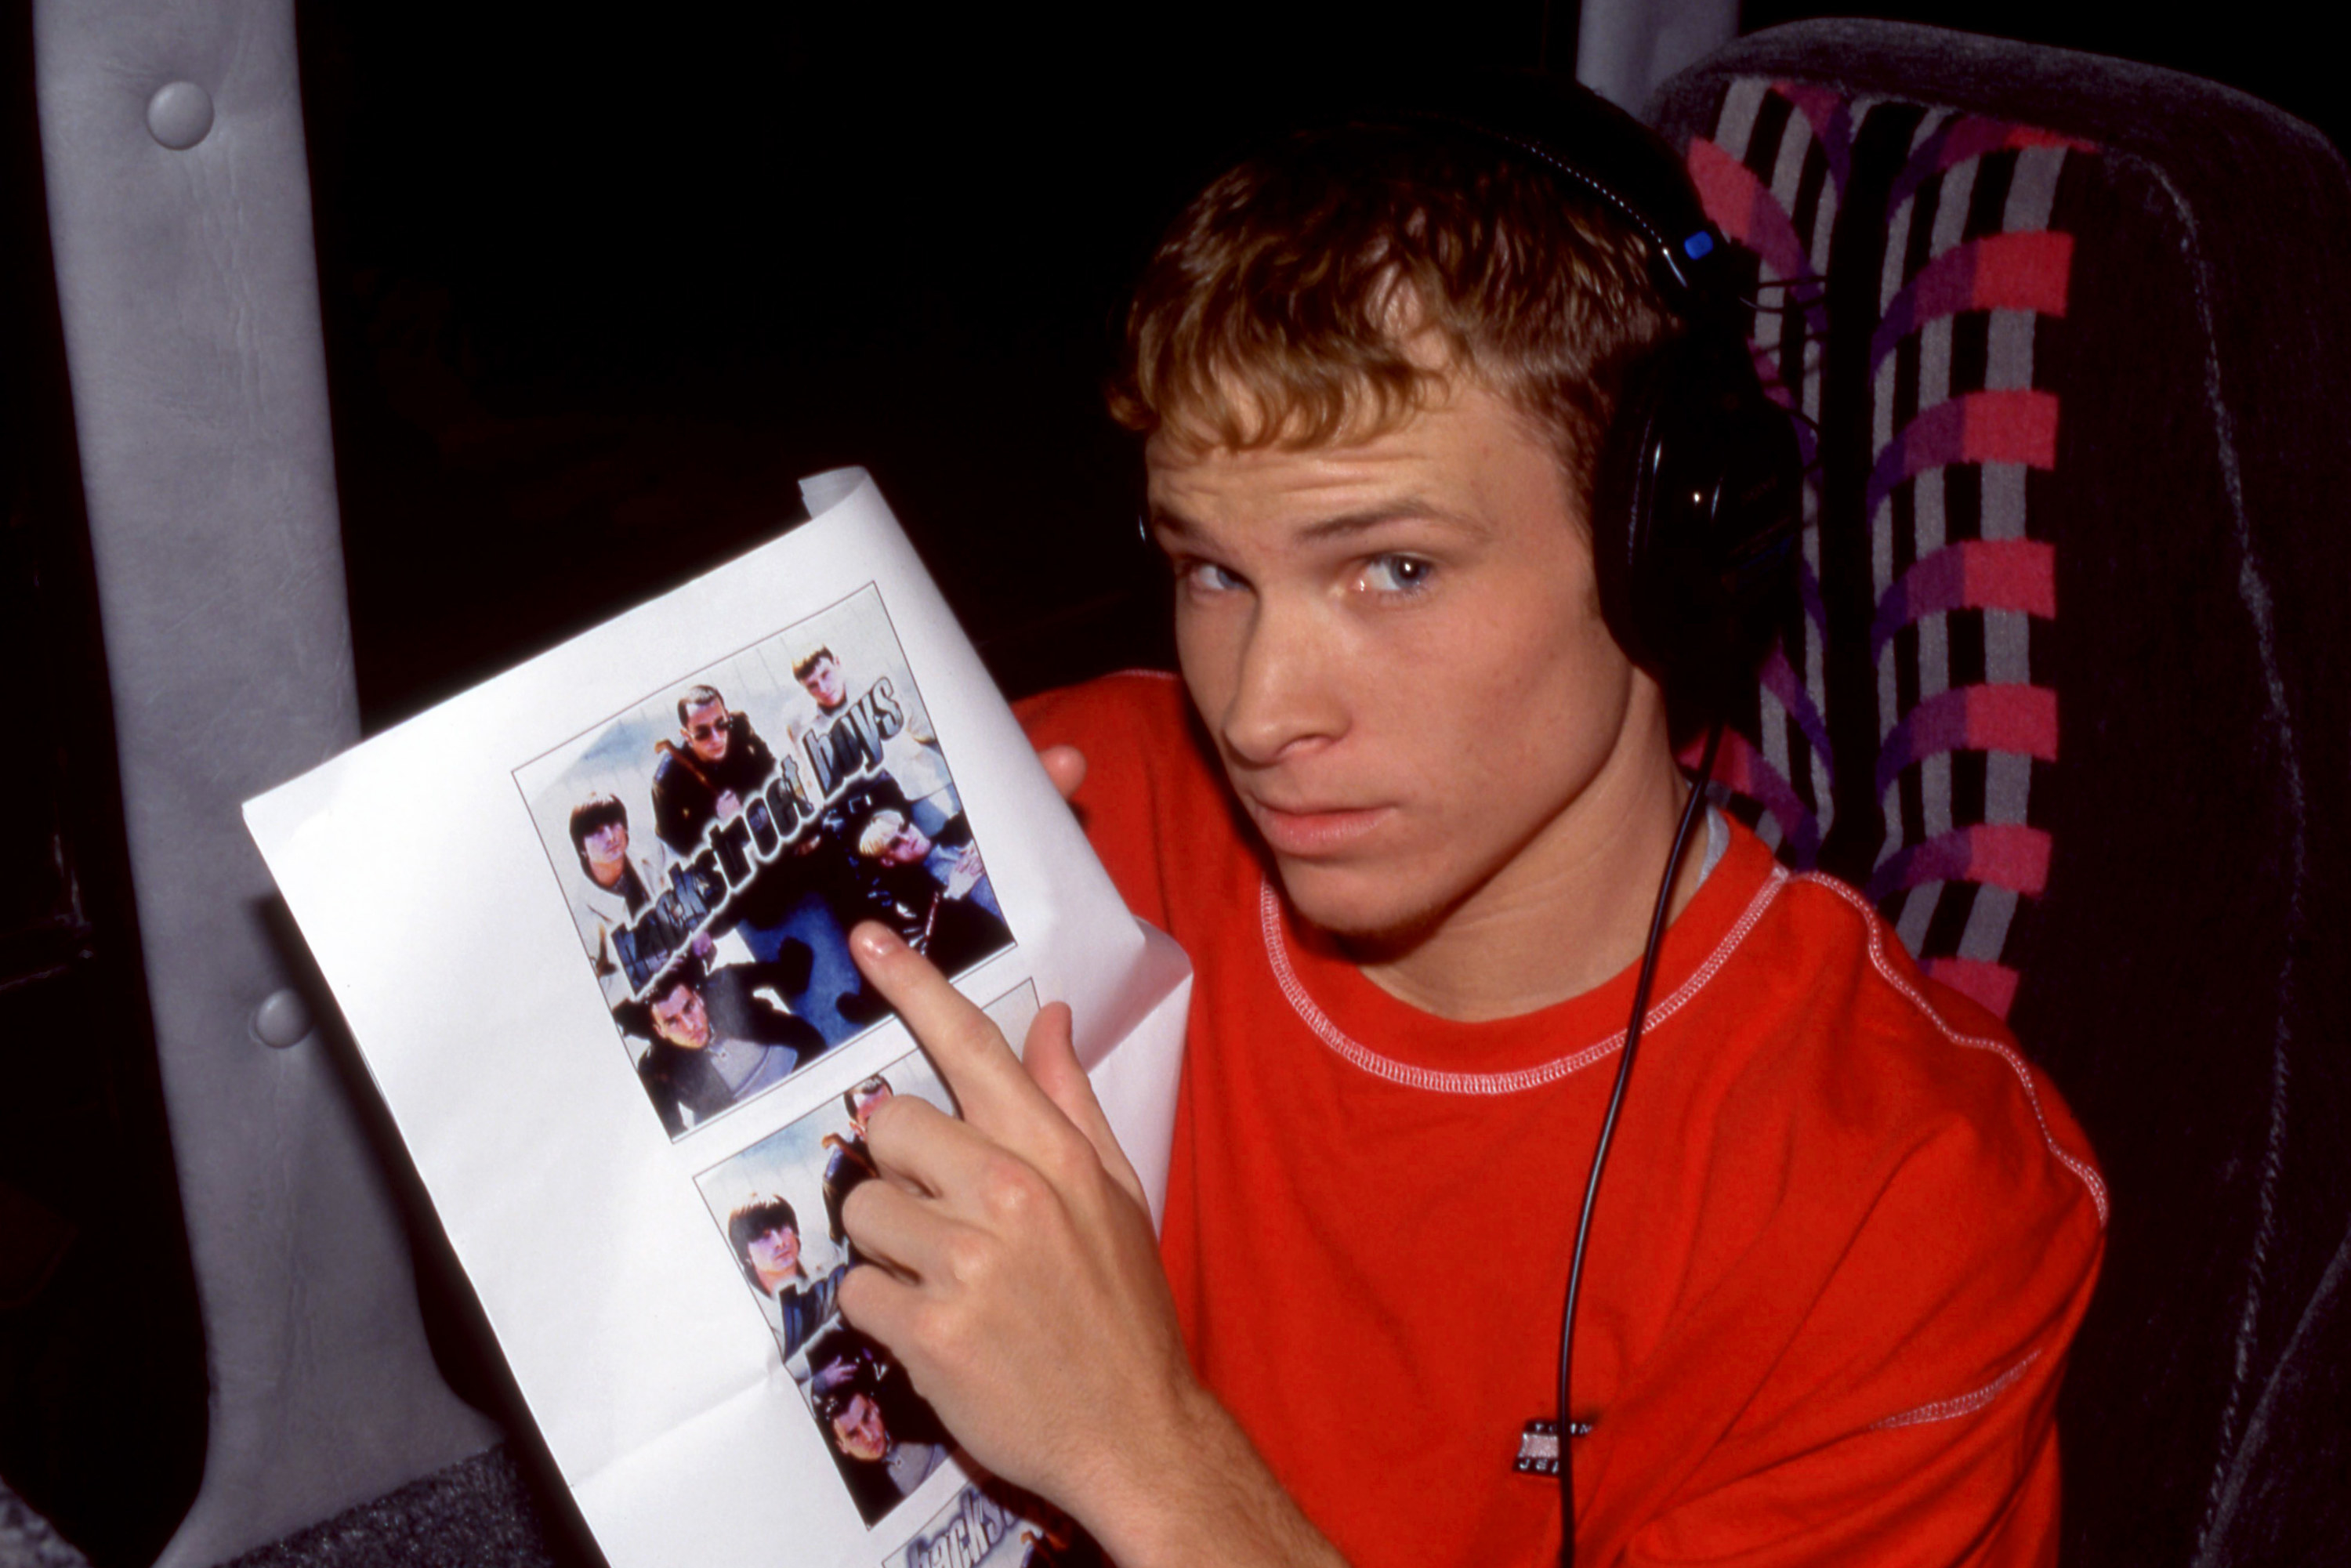 Brian pointing to a promotional photo of the BackStreet Boys